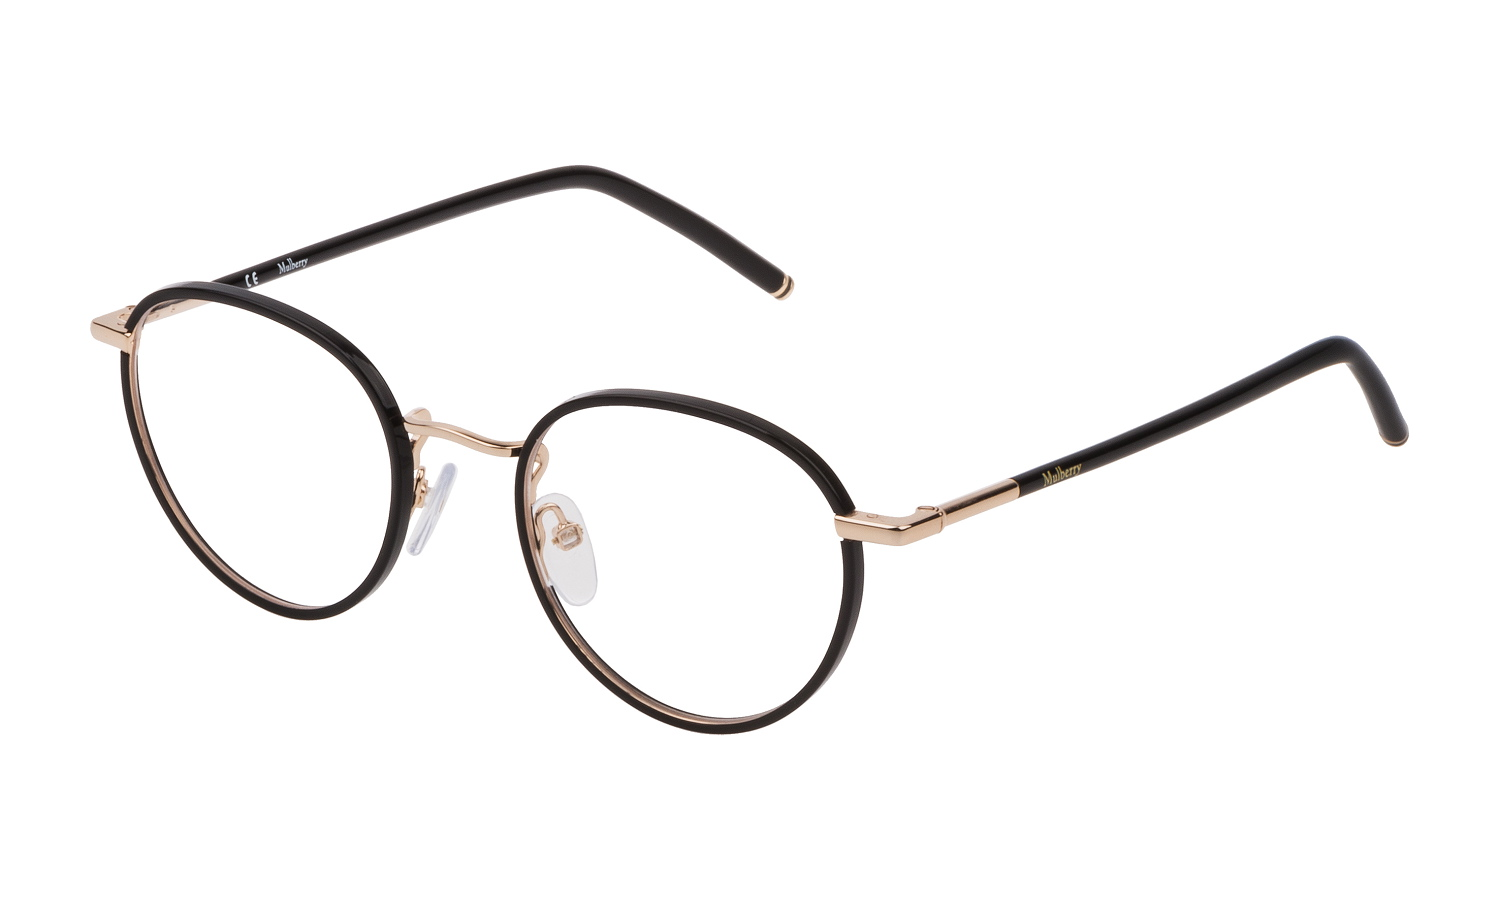 Mulberry VML 024 Prescription Glasses from $162.80